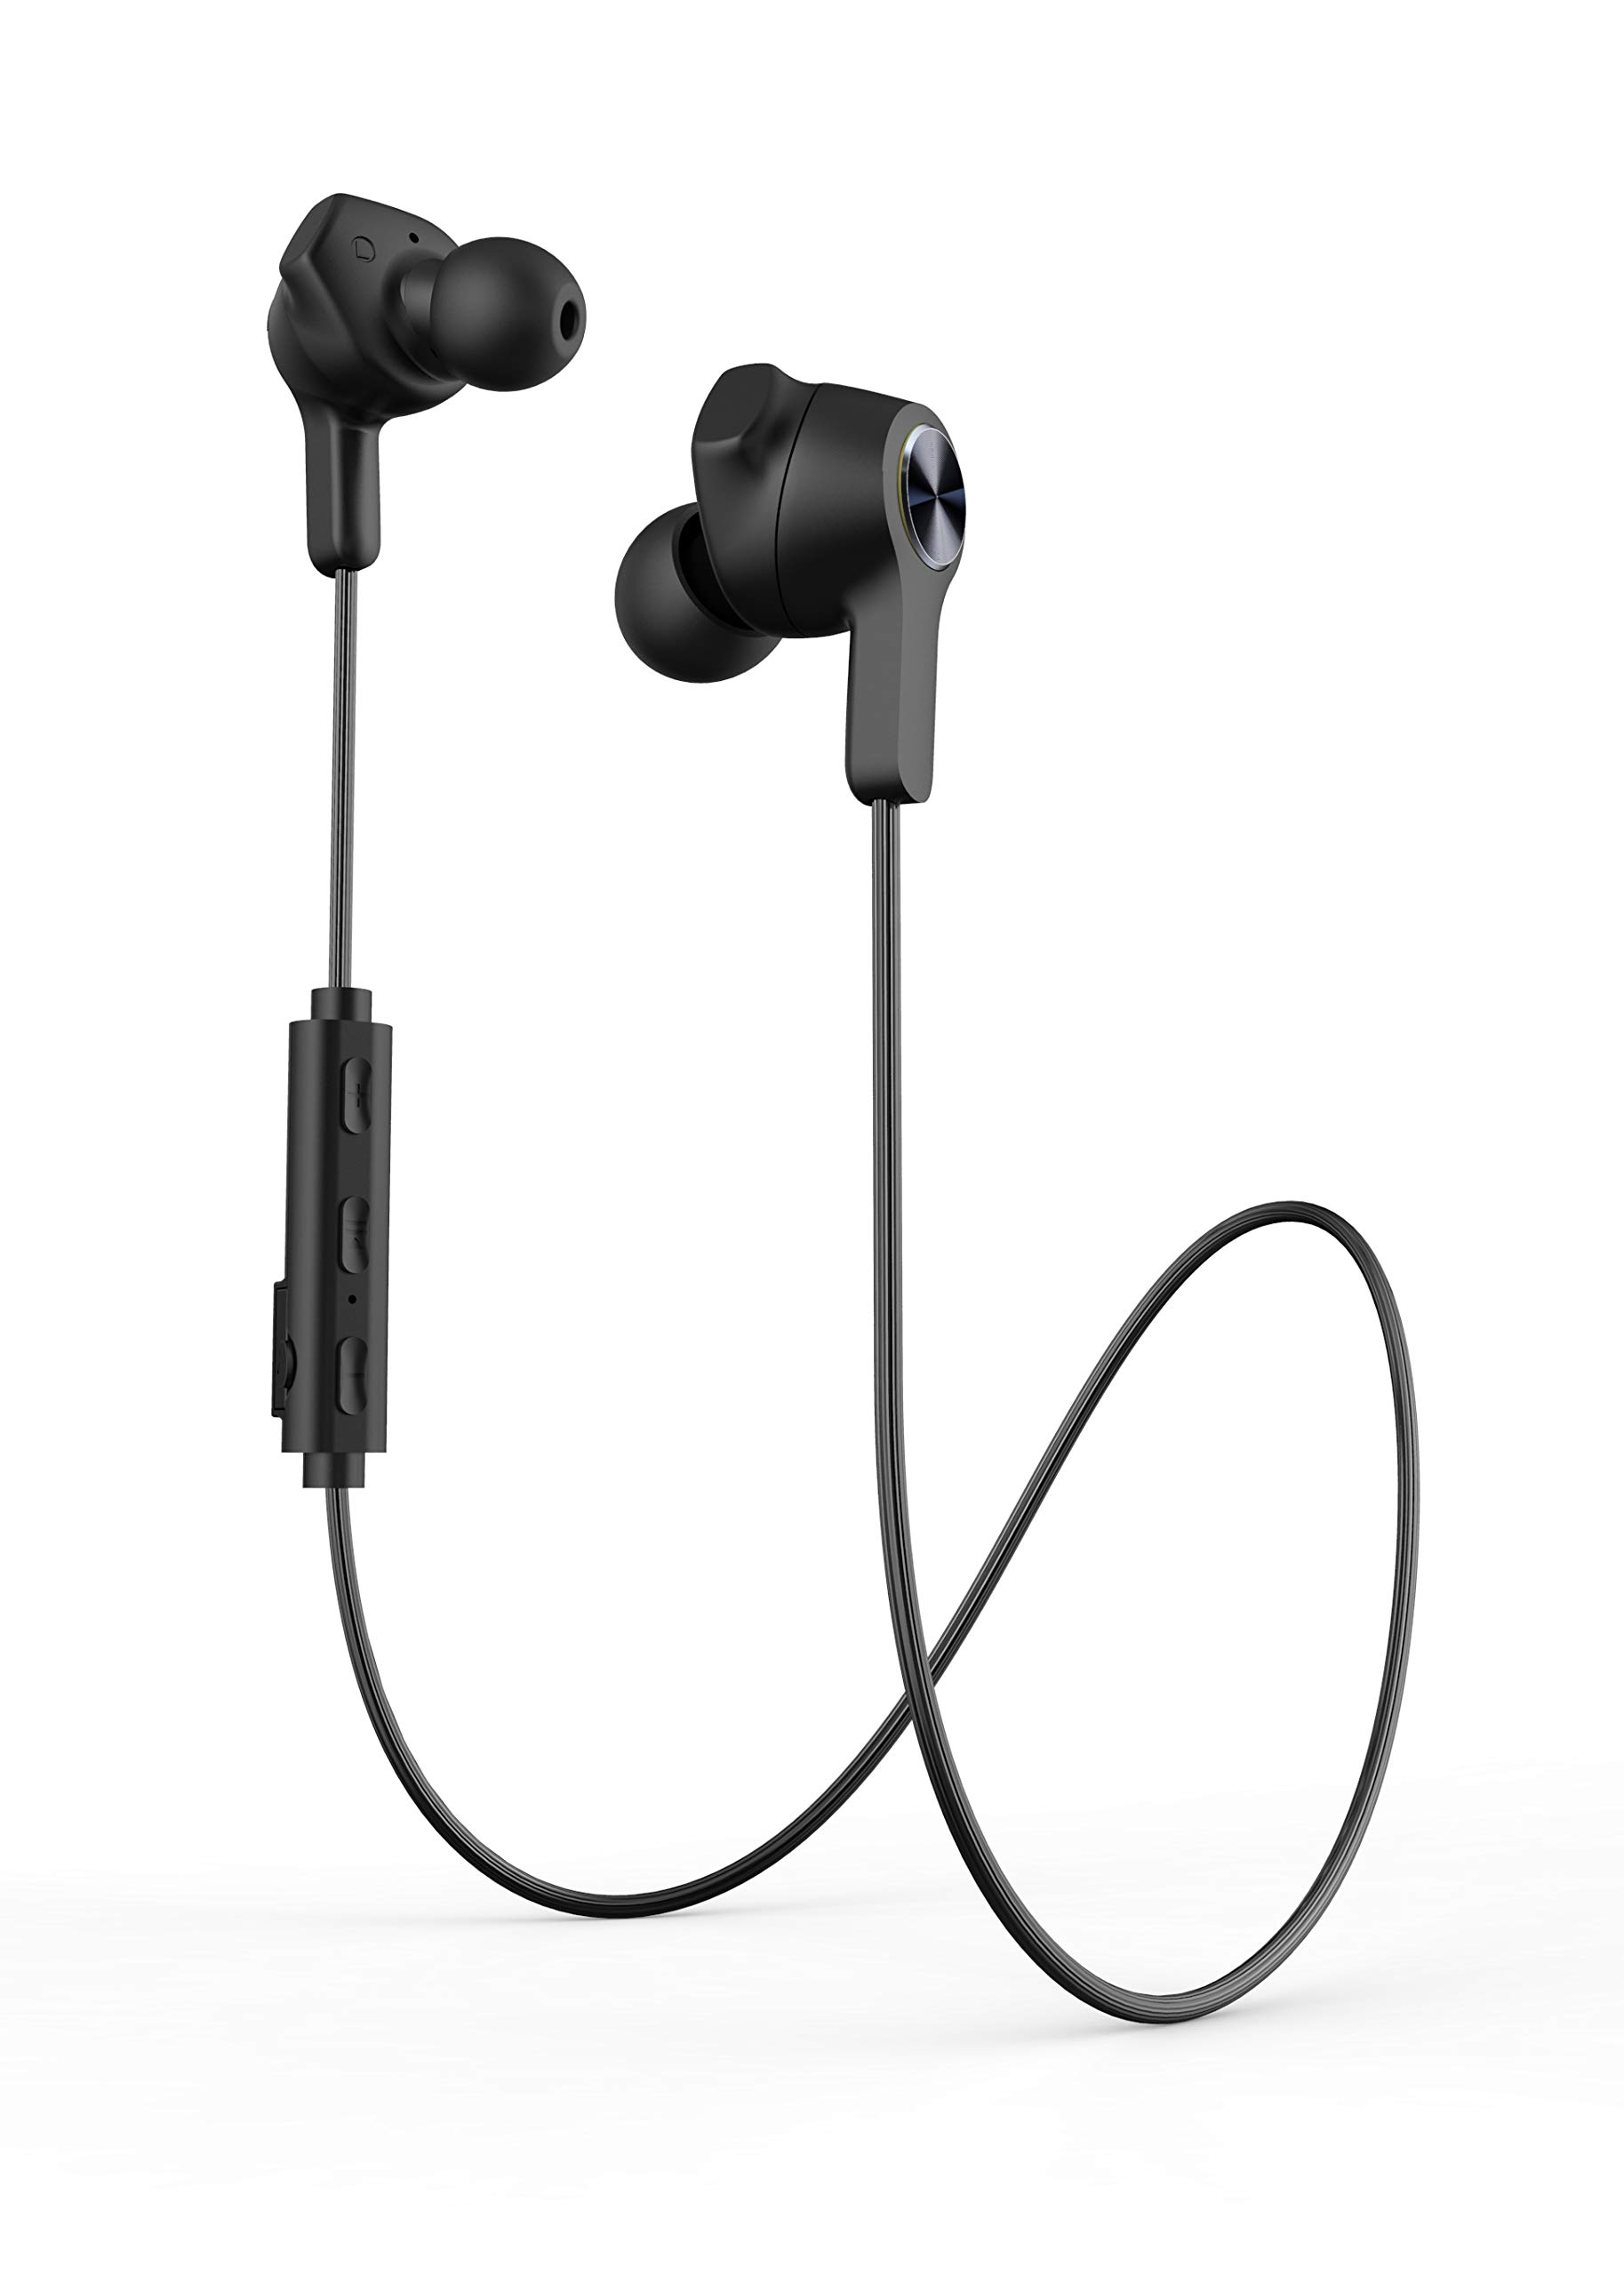 Bluetooth Headphones, Wireless Headphones Sport Earbuds, IPX7 Sweatproof Sports Noise Cancelling Stereo Neckband Earphones